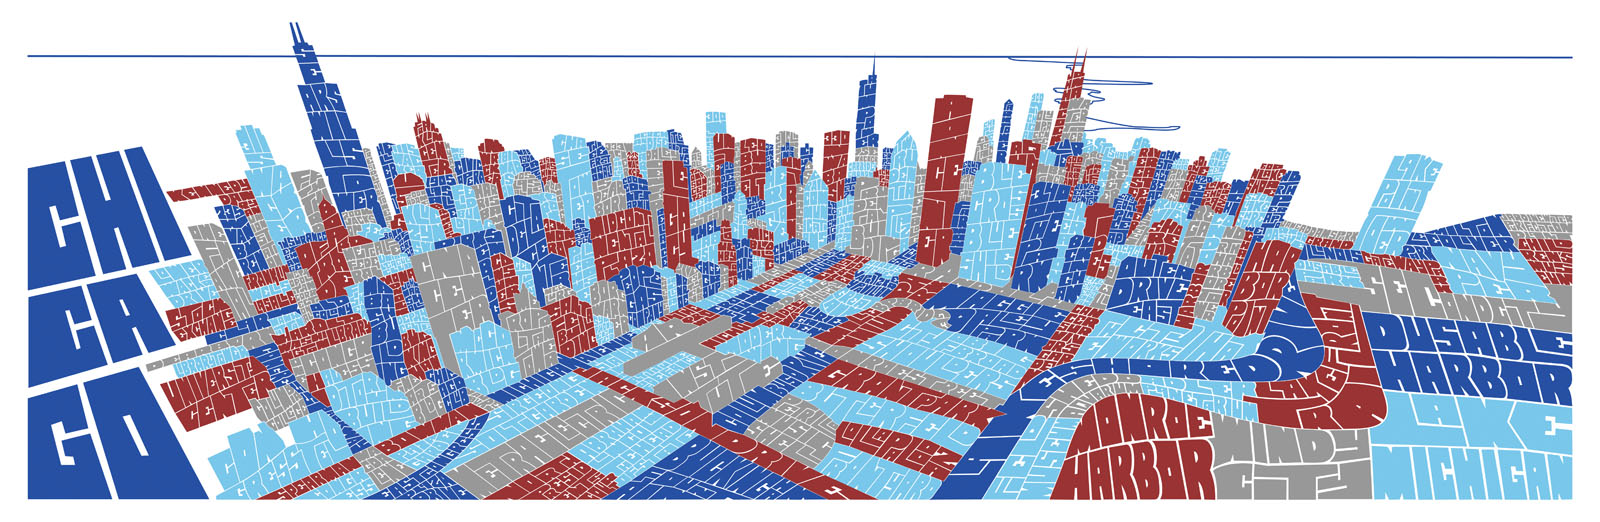 chi-typography-aerial-skyline-update-1600.png